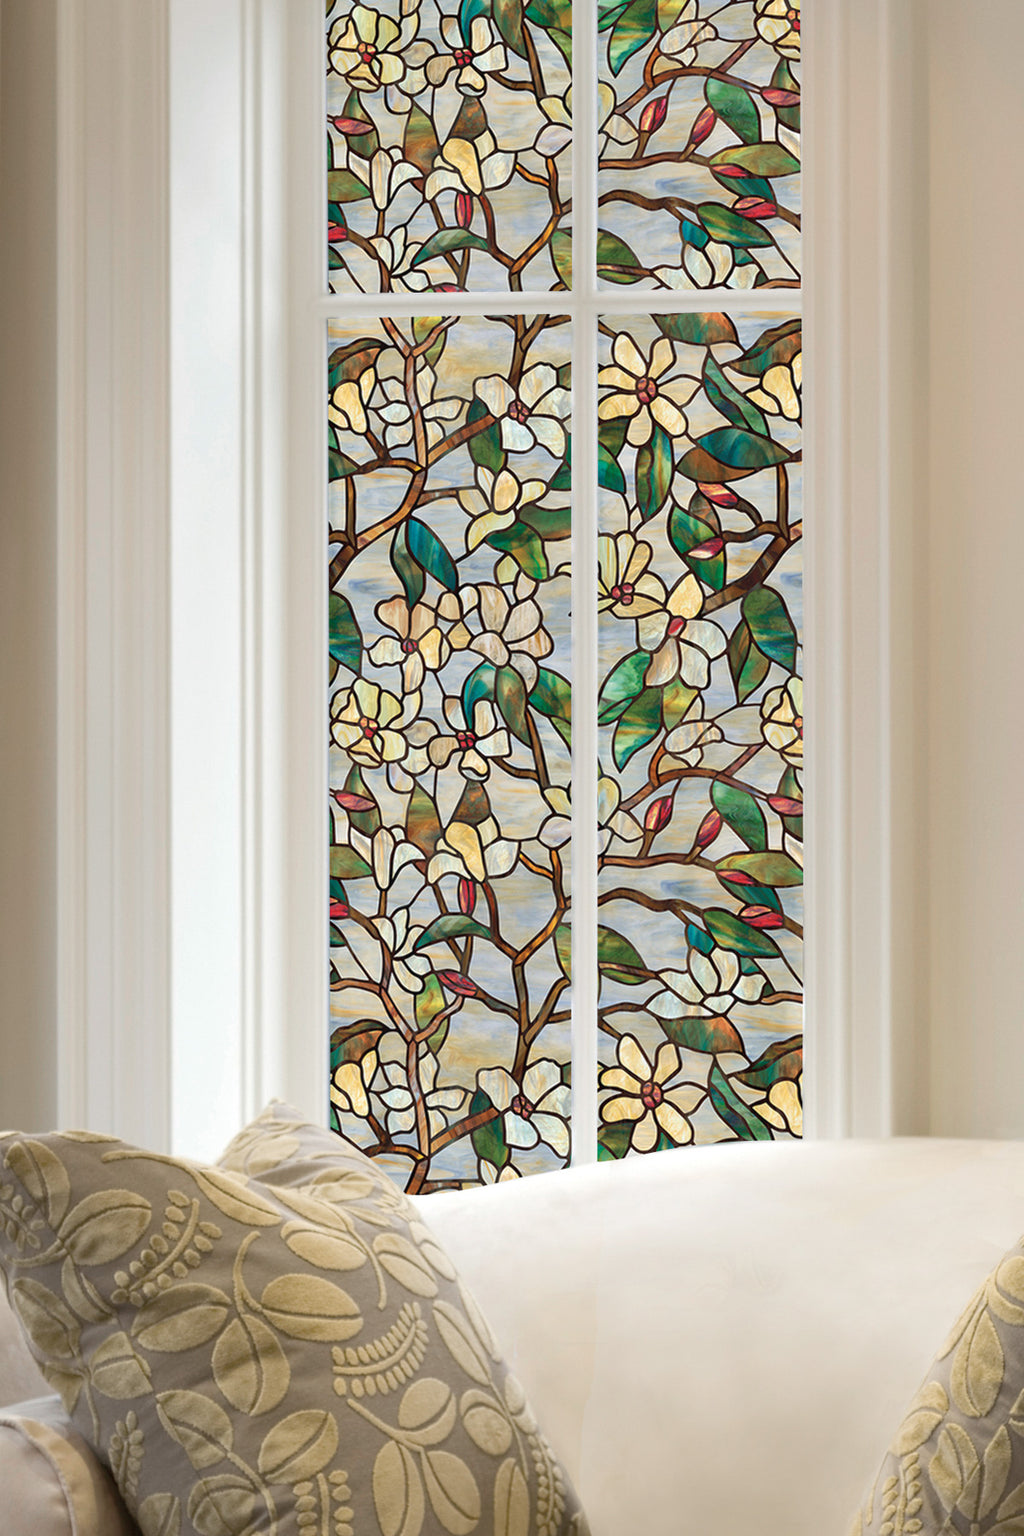 Artscape Summer Magnolia Window Film Lifestyle Image